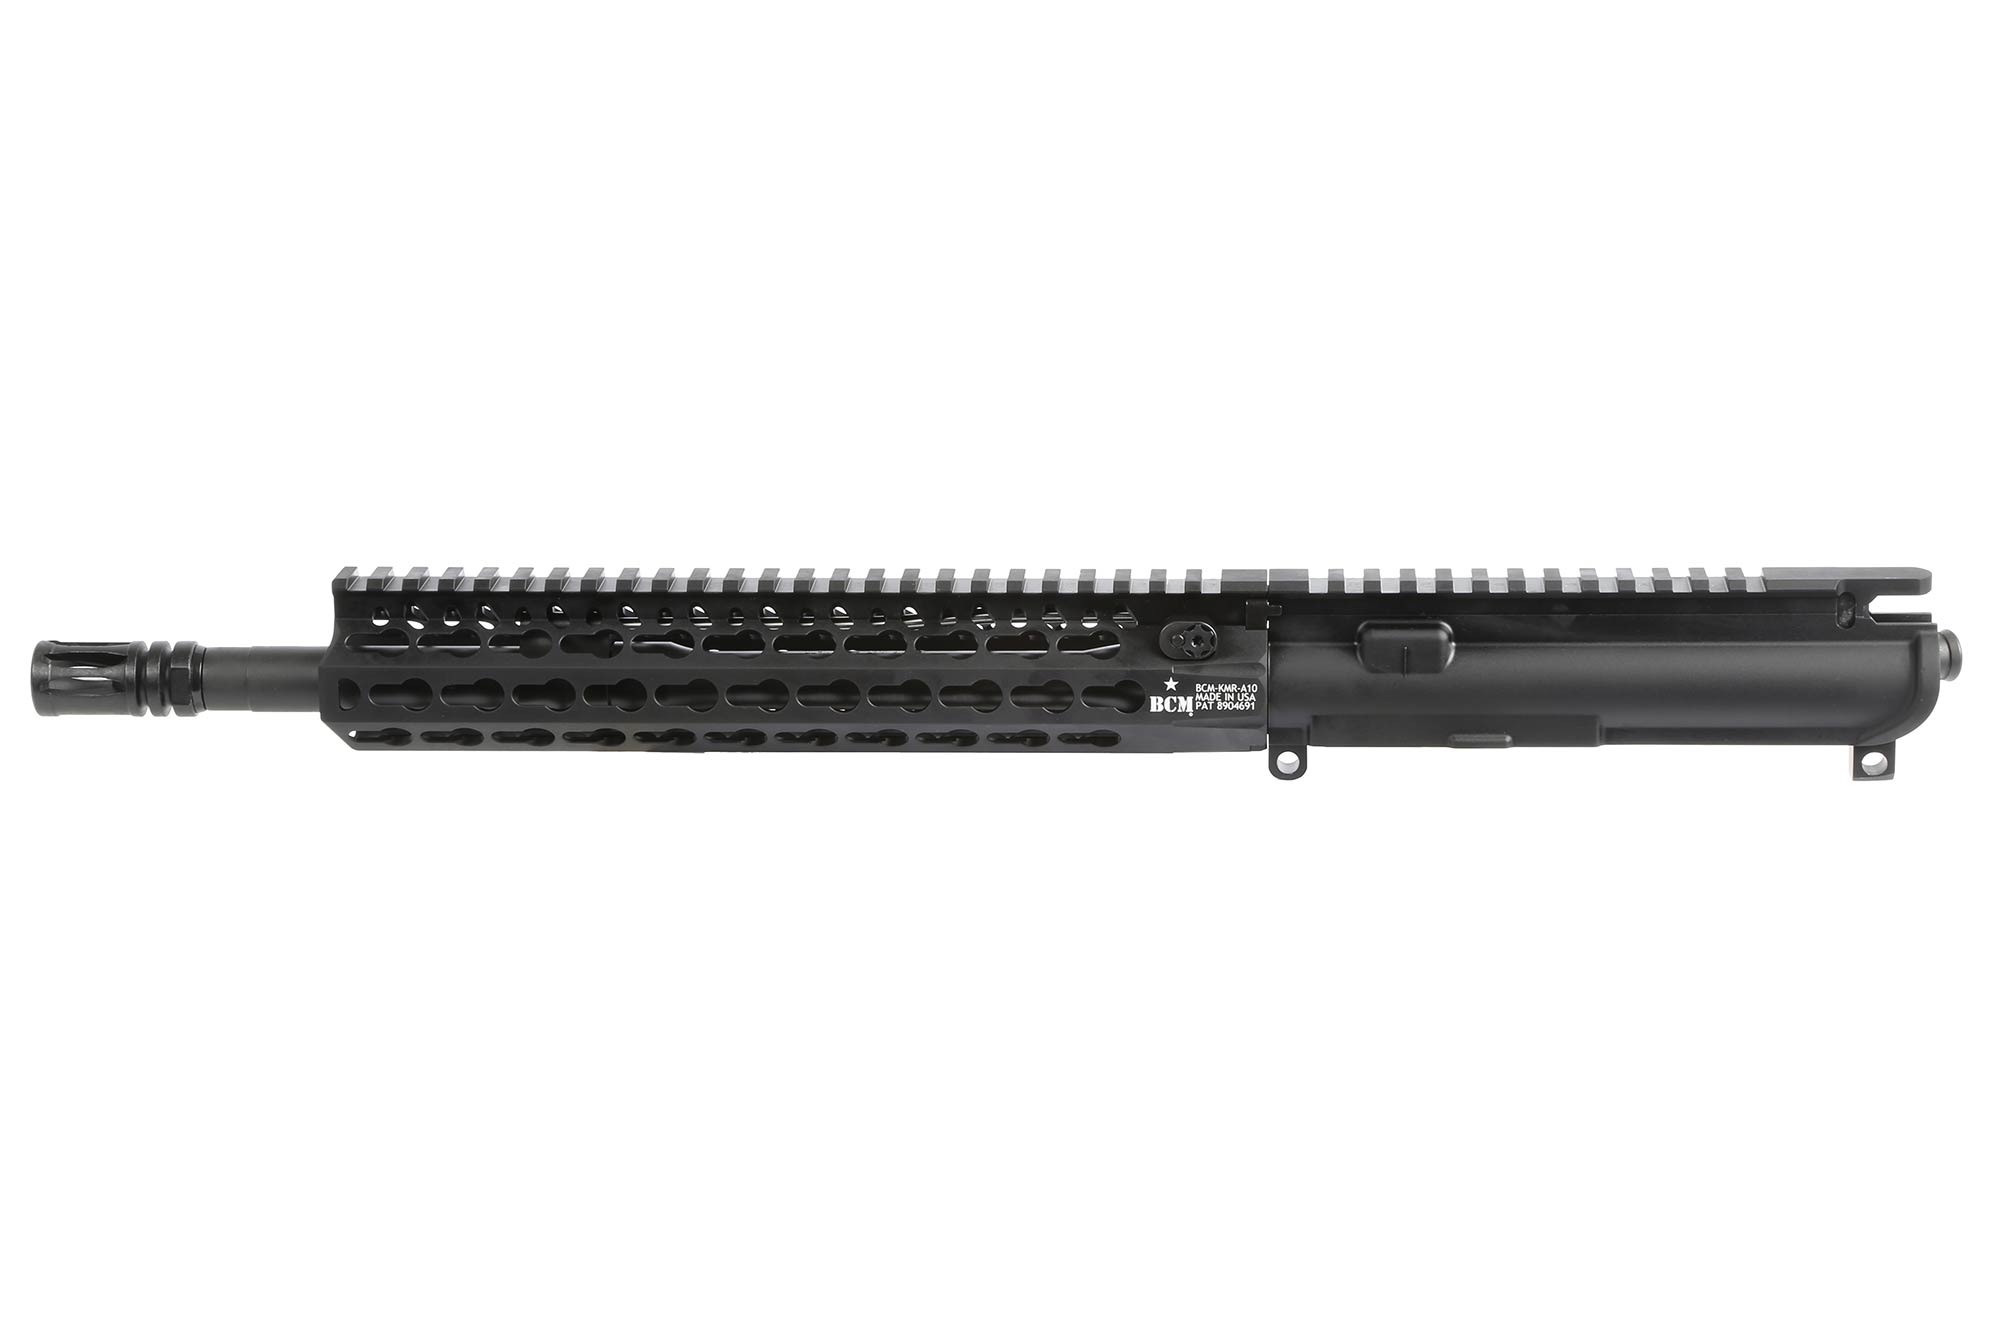 The BCM KMR AR15 upper receiver features a carbine length gas system